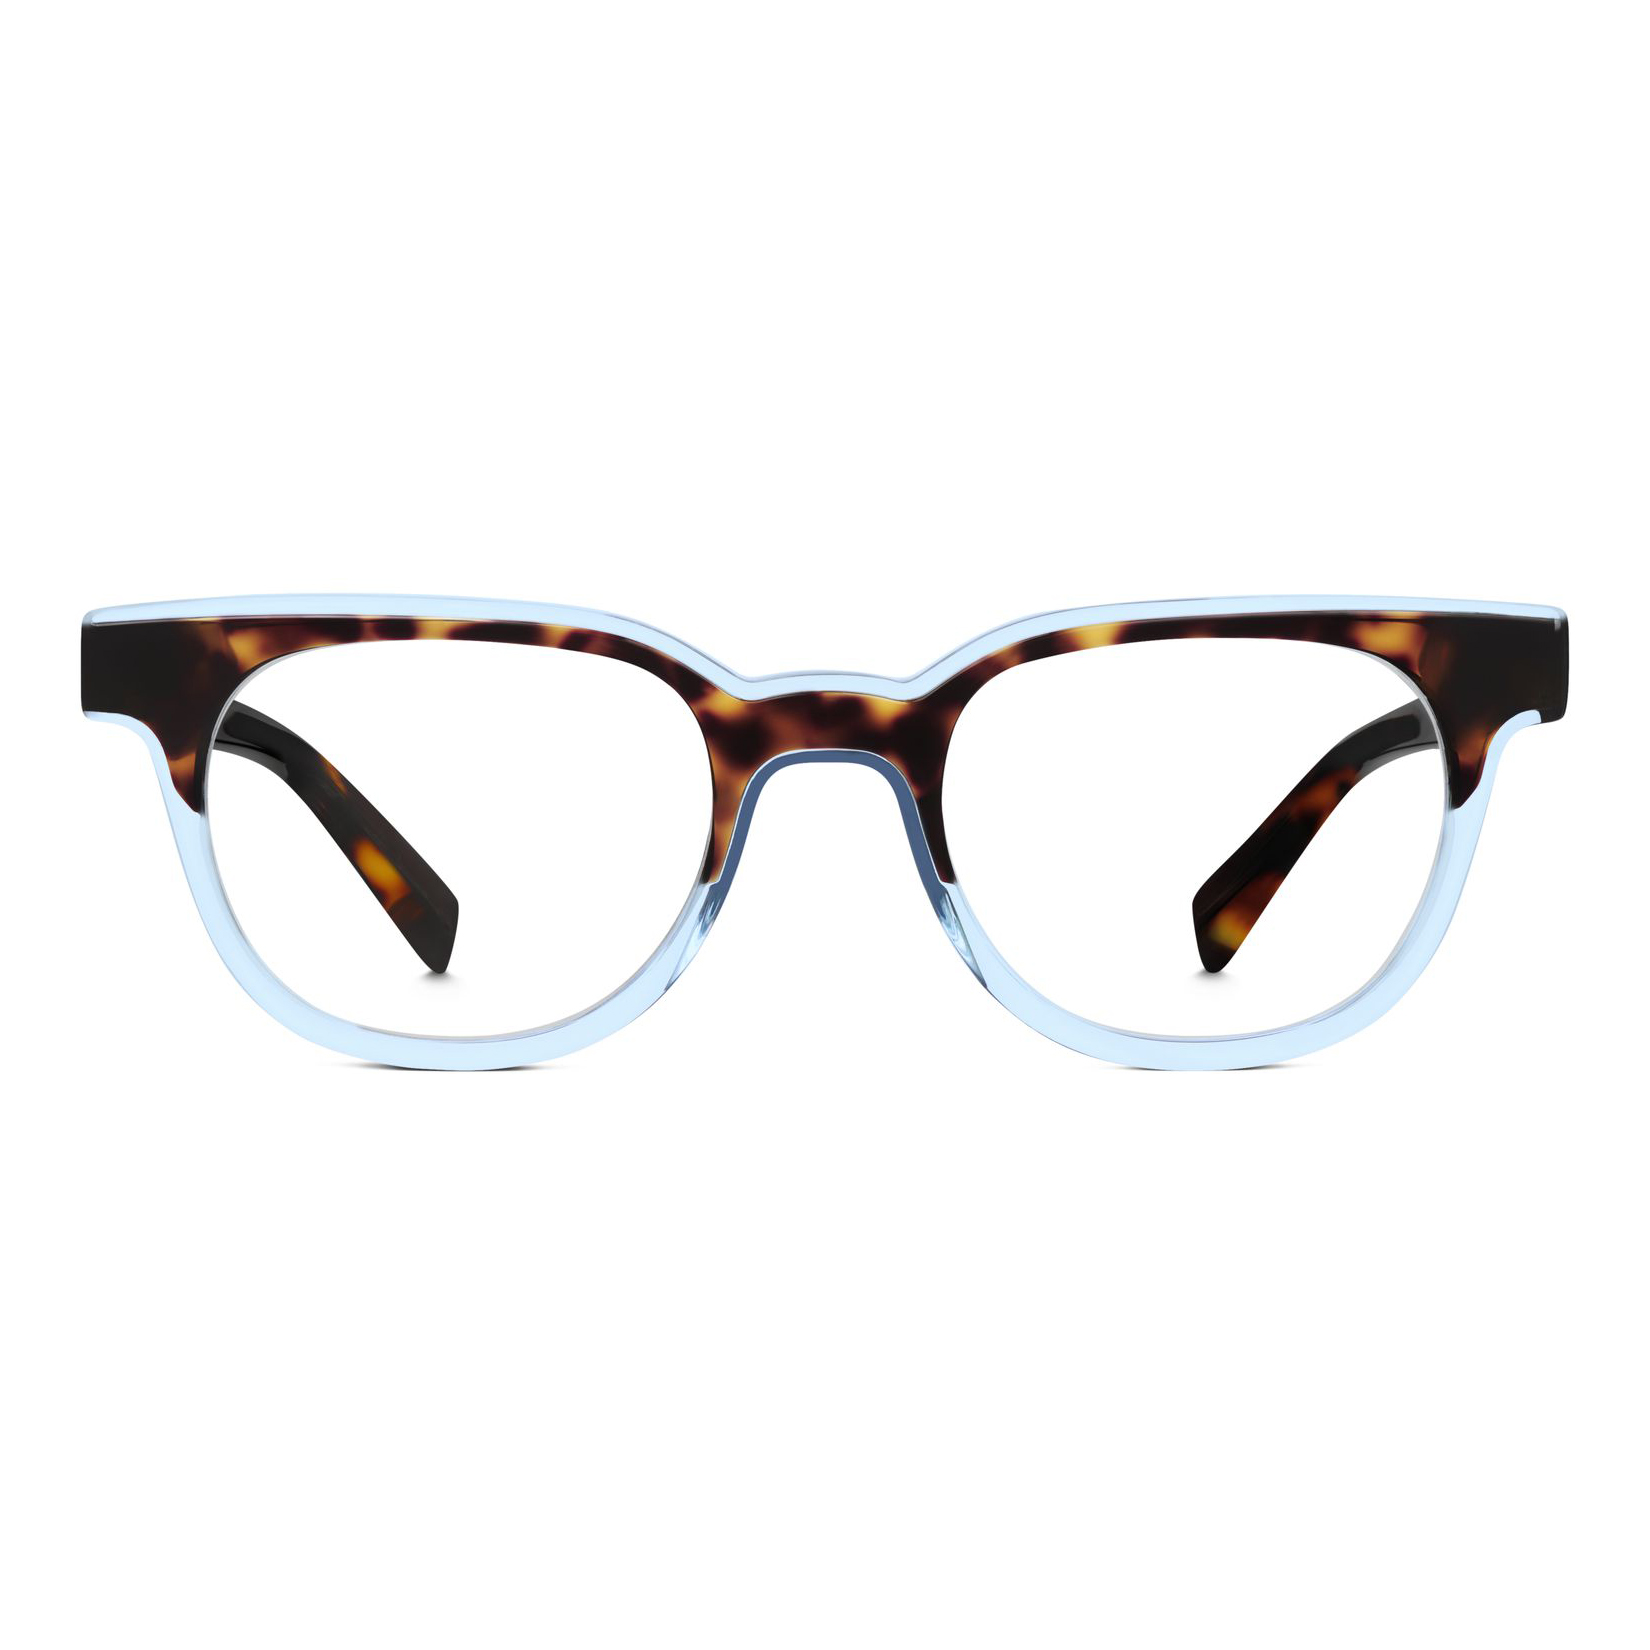 Duckworth Prescription Eyeglass Trends 2016